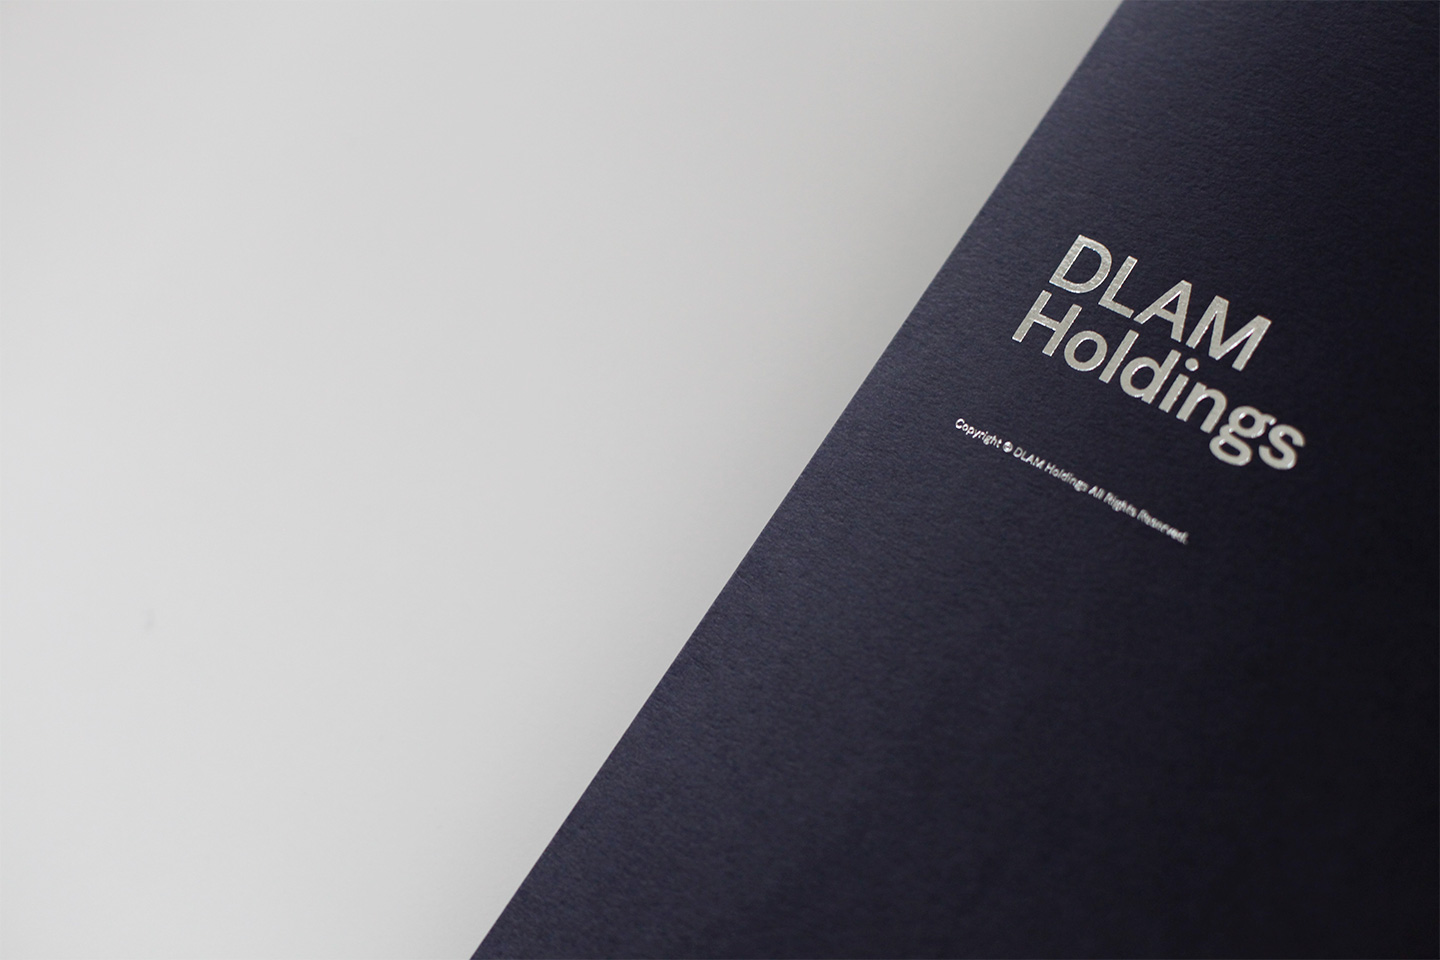 Pocket Folder Design for DLAM Holdings